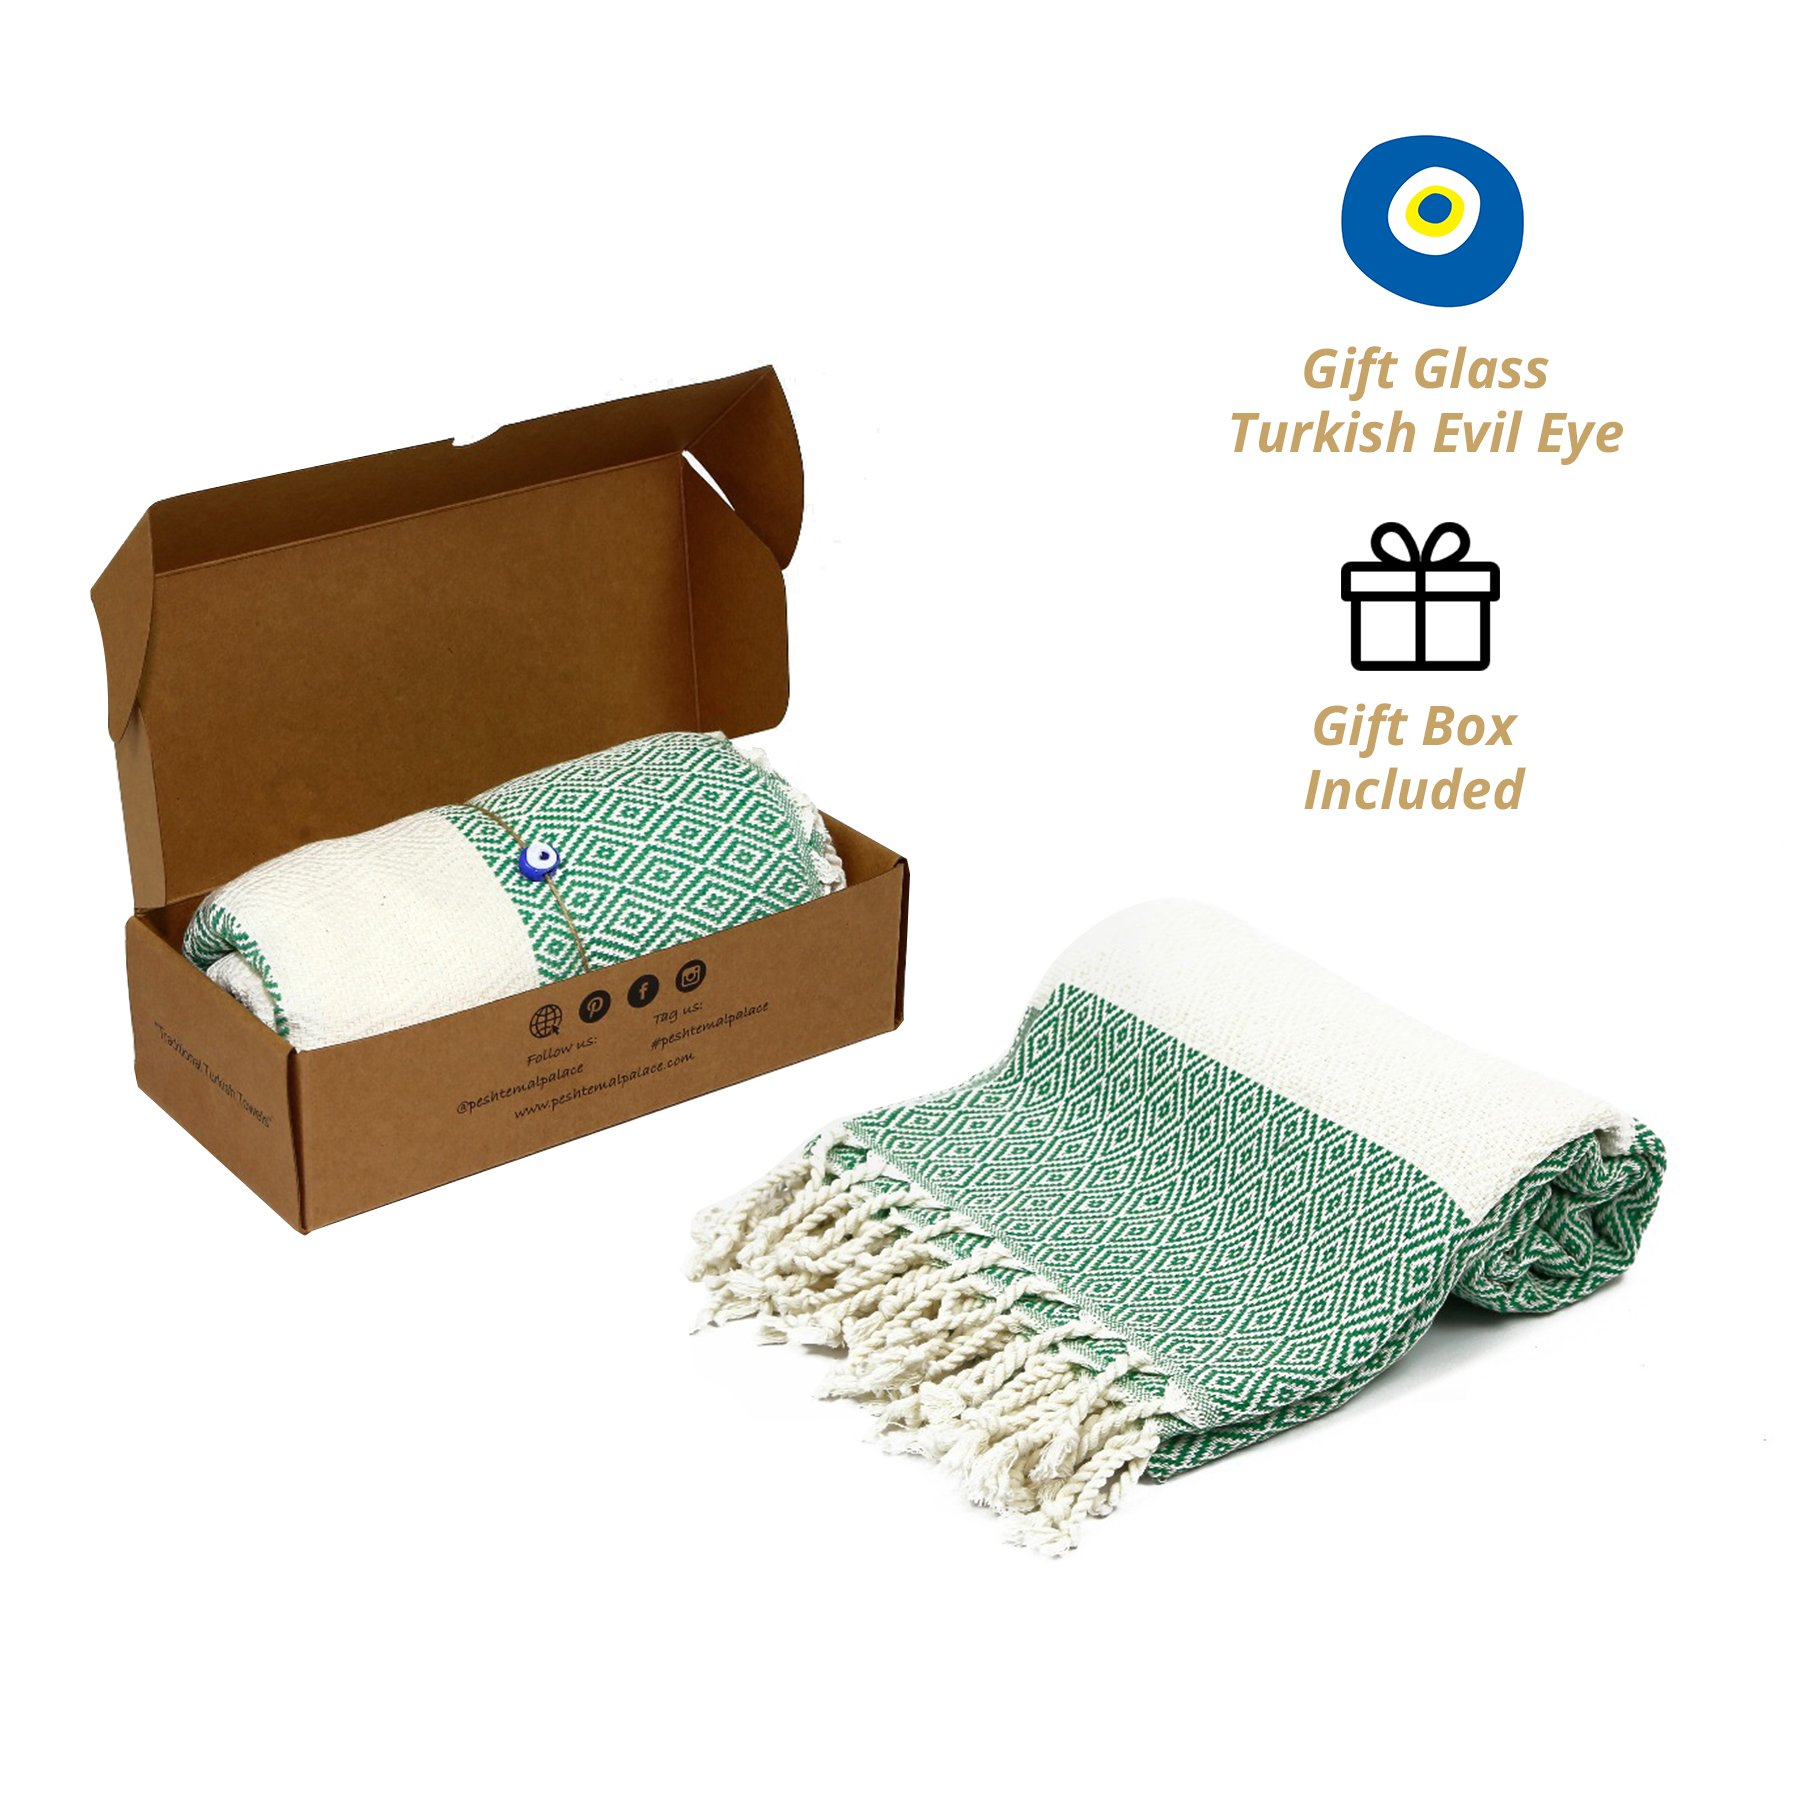 Peshtemal Palace %100 Turkish Cotton Diamond Pestemal Towel Naturally-Dyed ; Beach Towel, Hammam, Gift, Bath, Home Decor, Pilates, Yoga, Baby Towel, Pareo can be used.(71 inches x 39 inches)(Green)